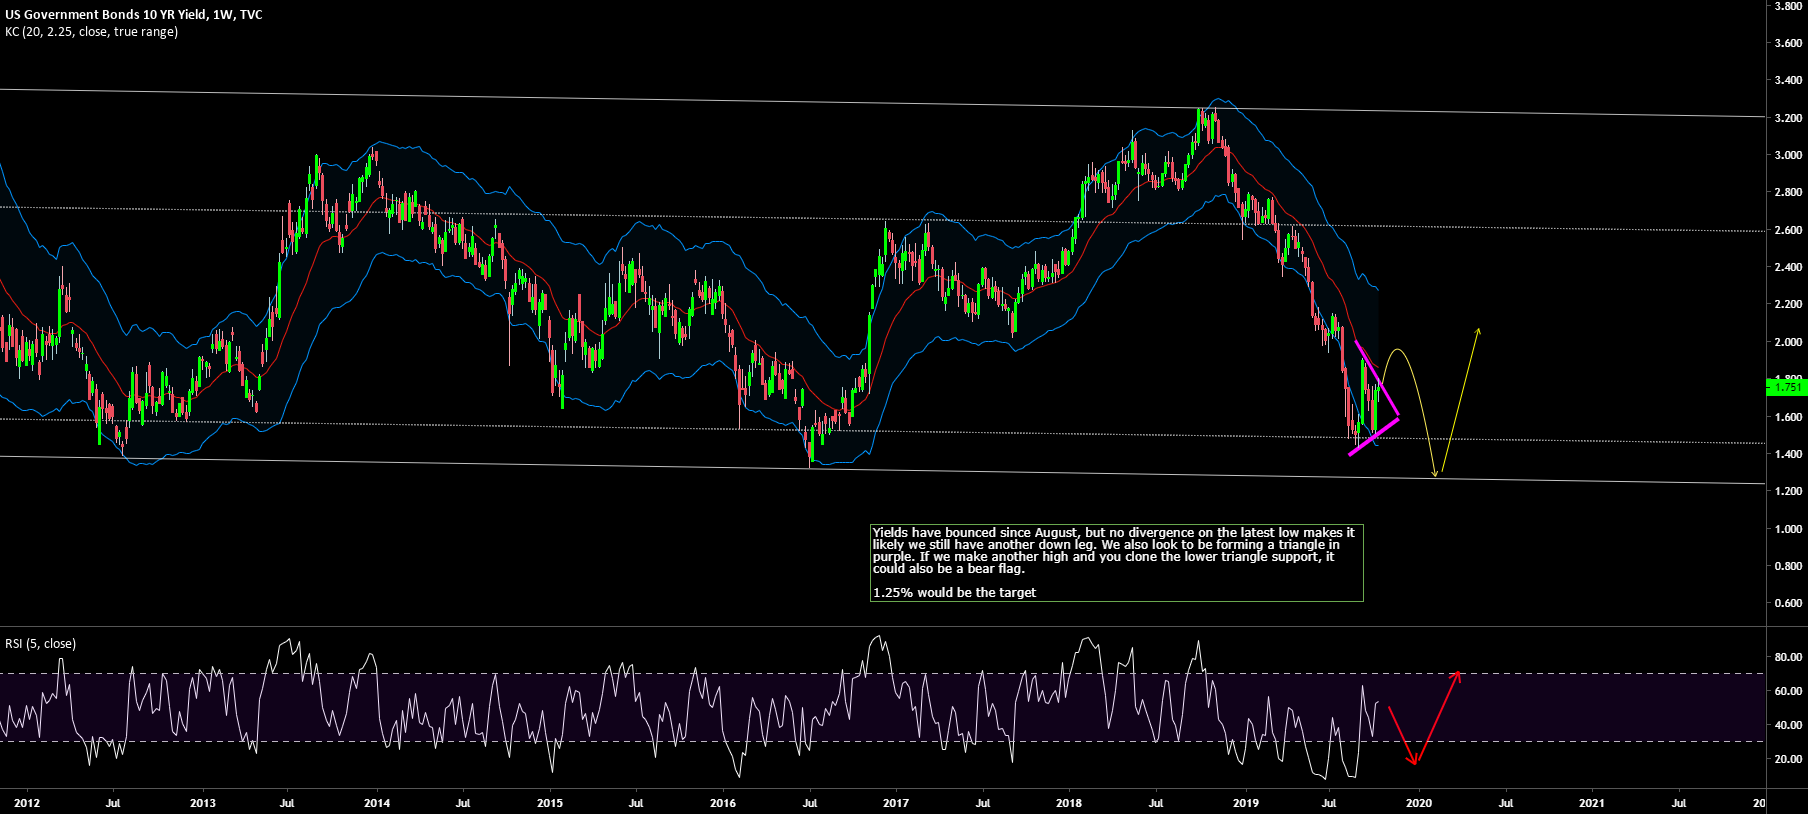 $GOLD Will see a deeper correction when 10 year yields bottom, but yields still look like they've got another leg down to 1.25%. The September low doesn't look like prior bottoms, and instead like a continuation triangle for another down leg. If so, Gold has another high still https://t.co/L16zEaqBwP